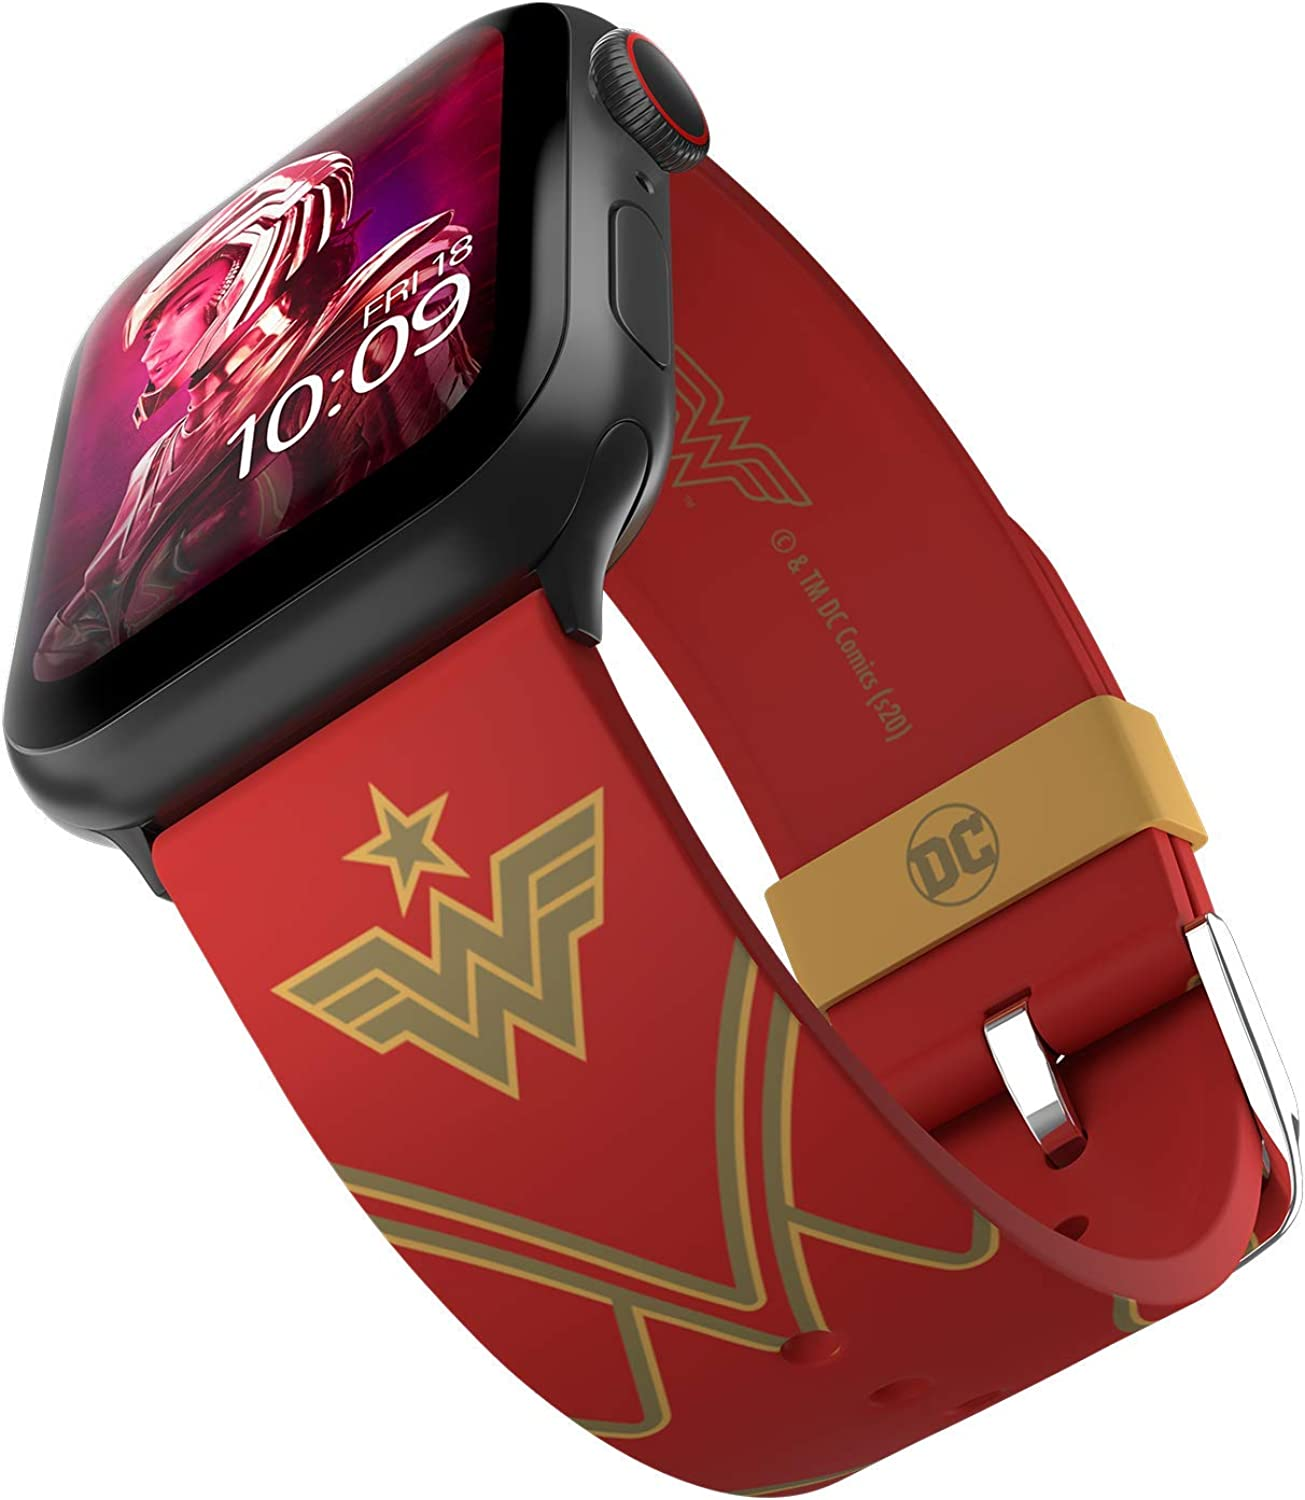 DC Comics - Wonder Woman 1984: Crimson Armor Smartwatch Band – Officially Licensed, Compatible with Apple Watch (not included) – Fits 38mm, 40mm, 42mm and 44mm